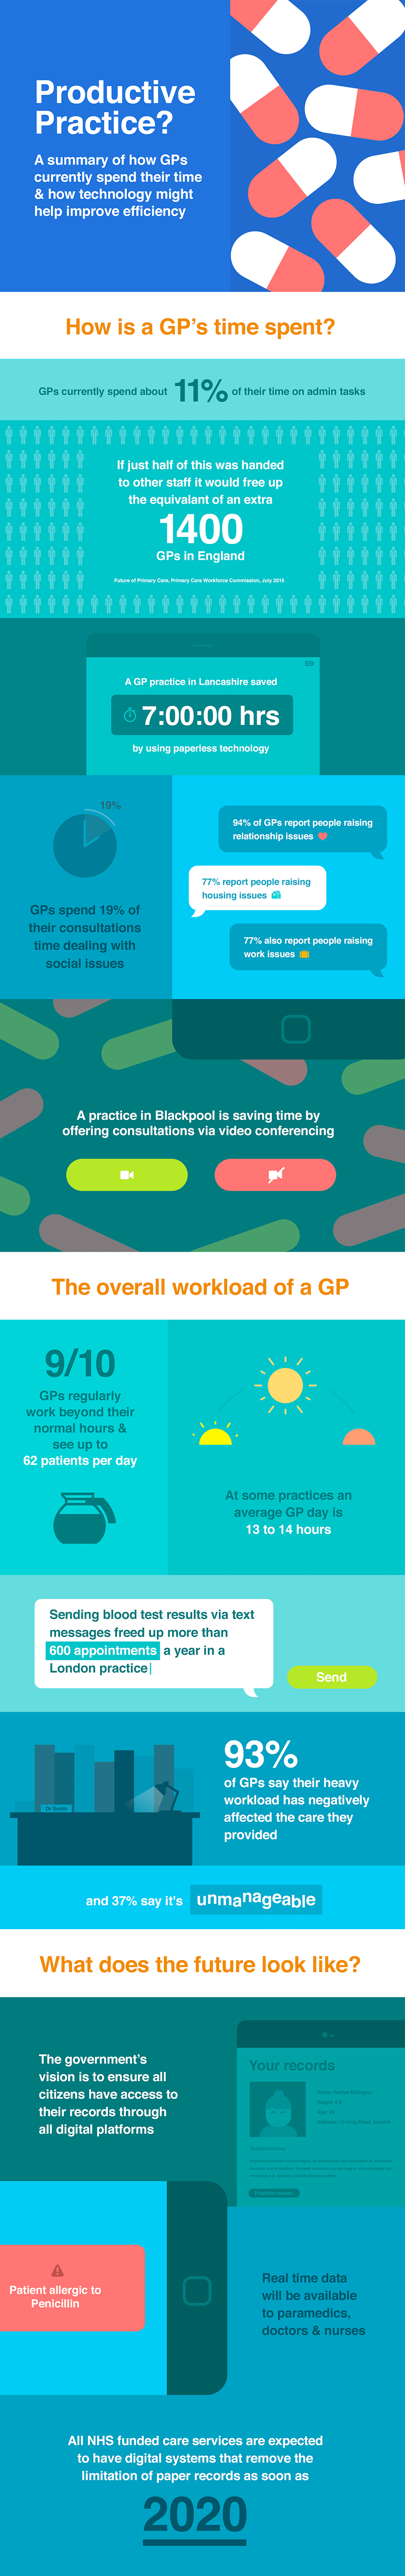 GP Workload Efficiency infographic from Brother UK   Healthcare